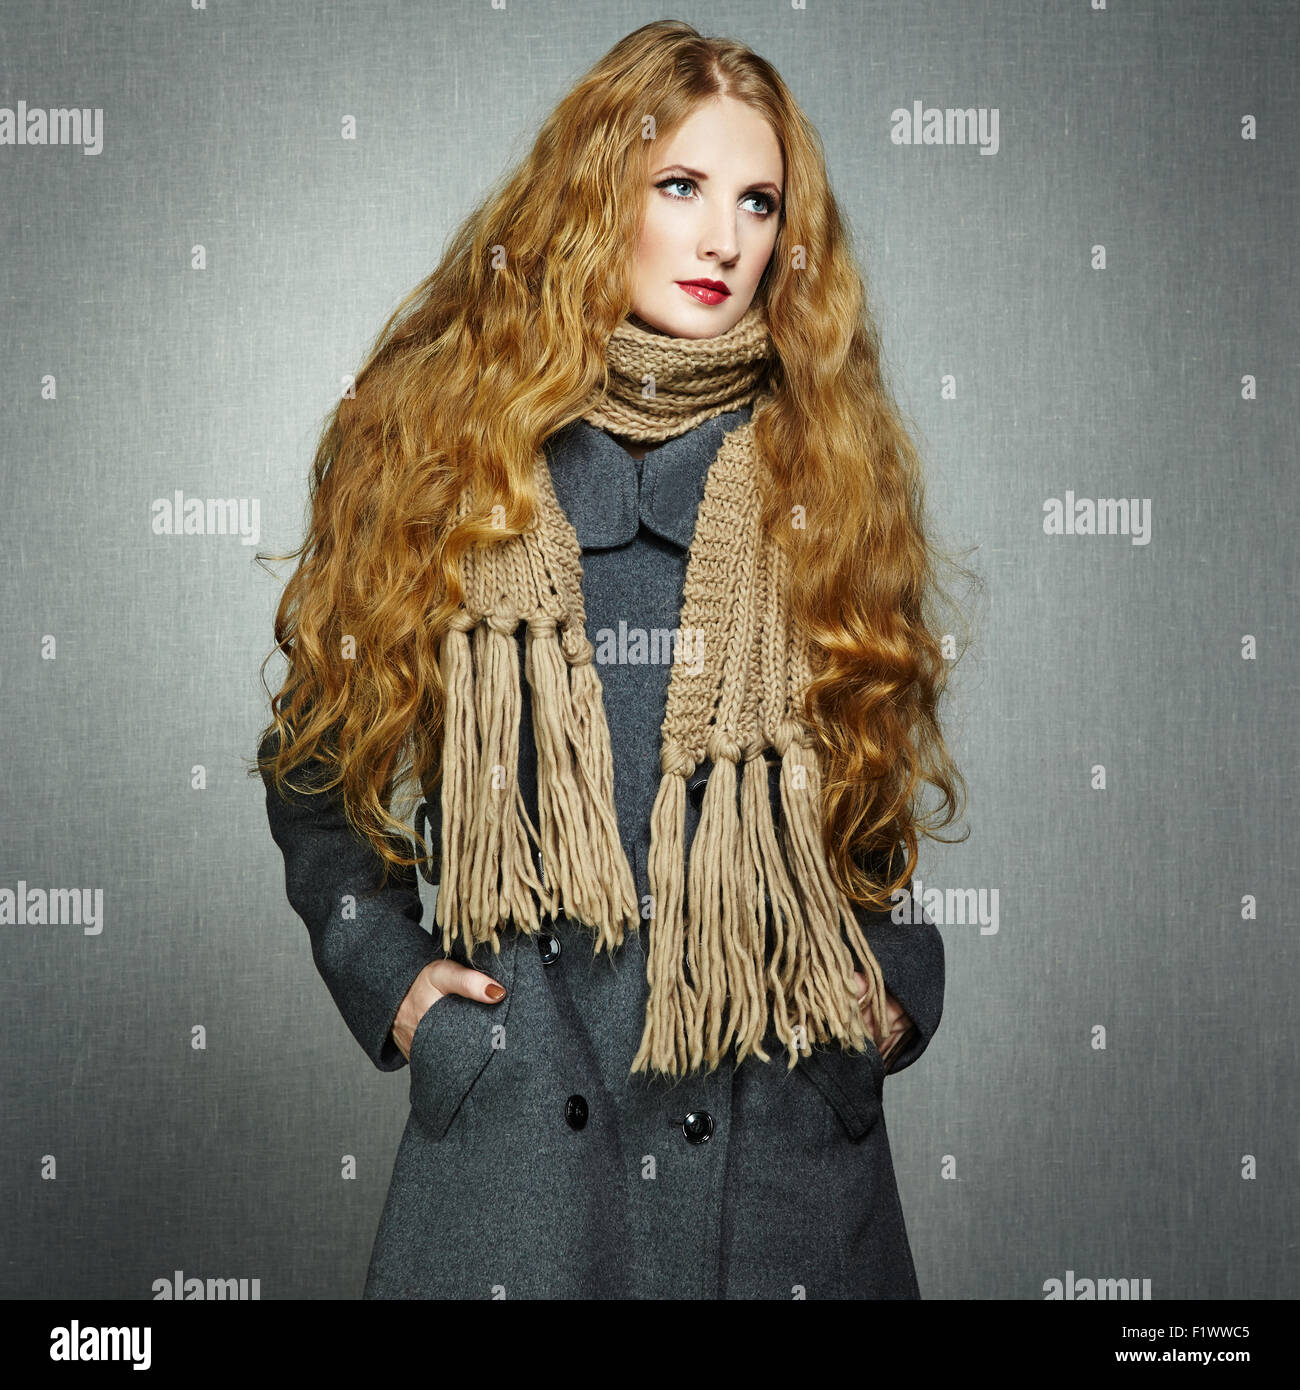 Portrait of young woman in autumn coat. Fashion photo - Stock Image